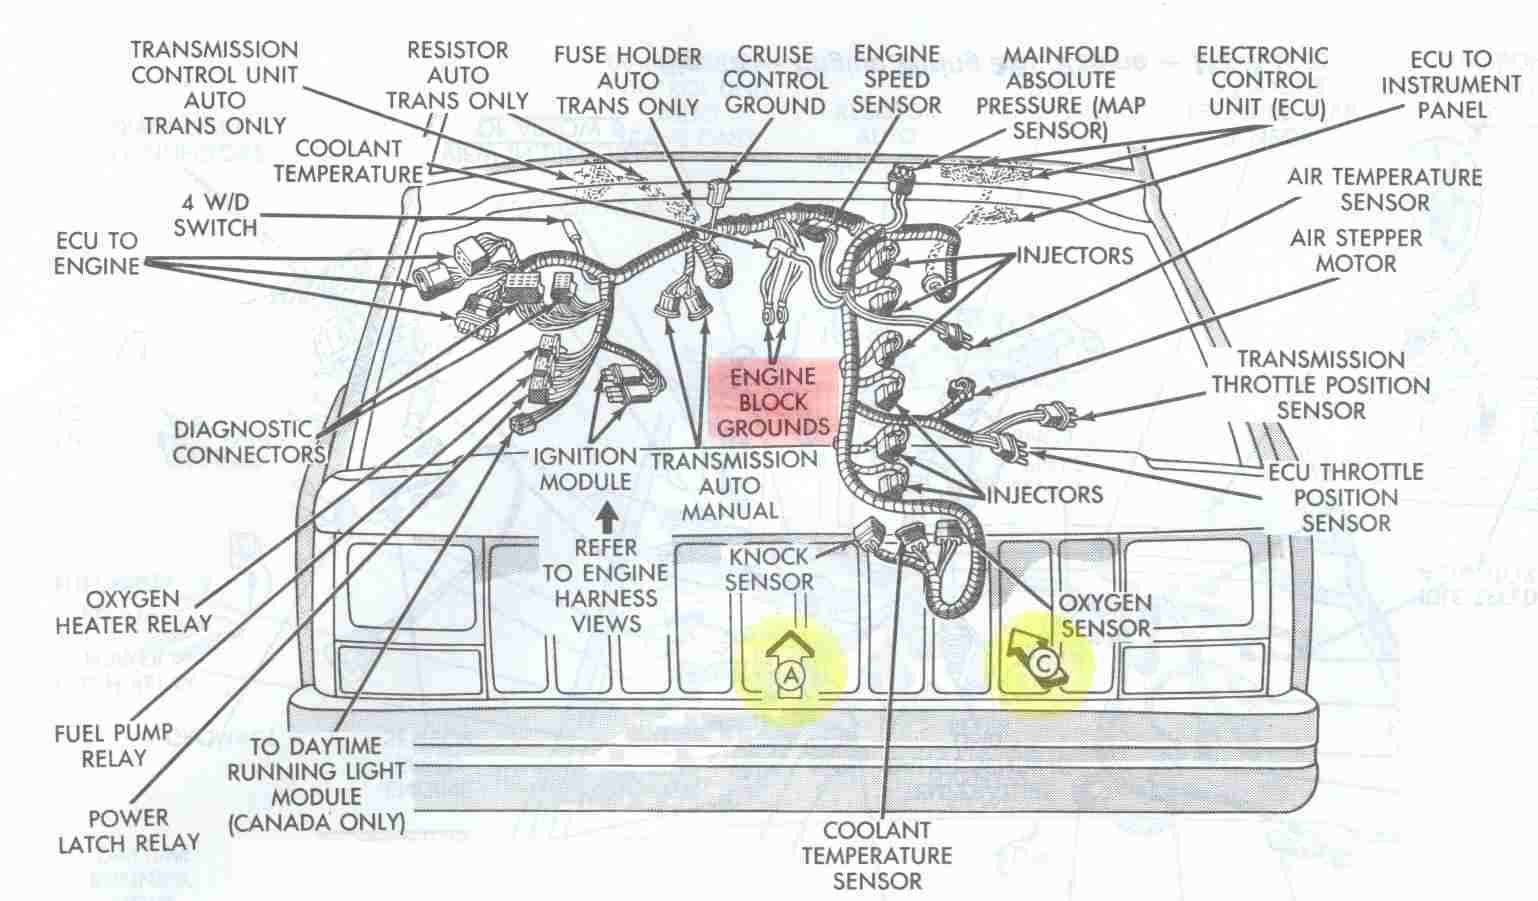 ab0134a7d9e021431187af597eb4aeca engine bay schematic showing major electrical ground points for 1999 jeep grand cherokee wiring harness at bayanpartner.co